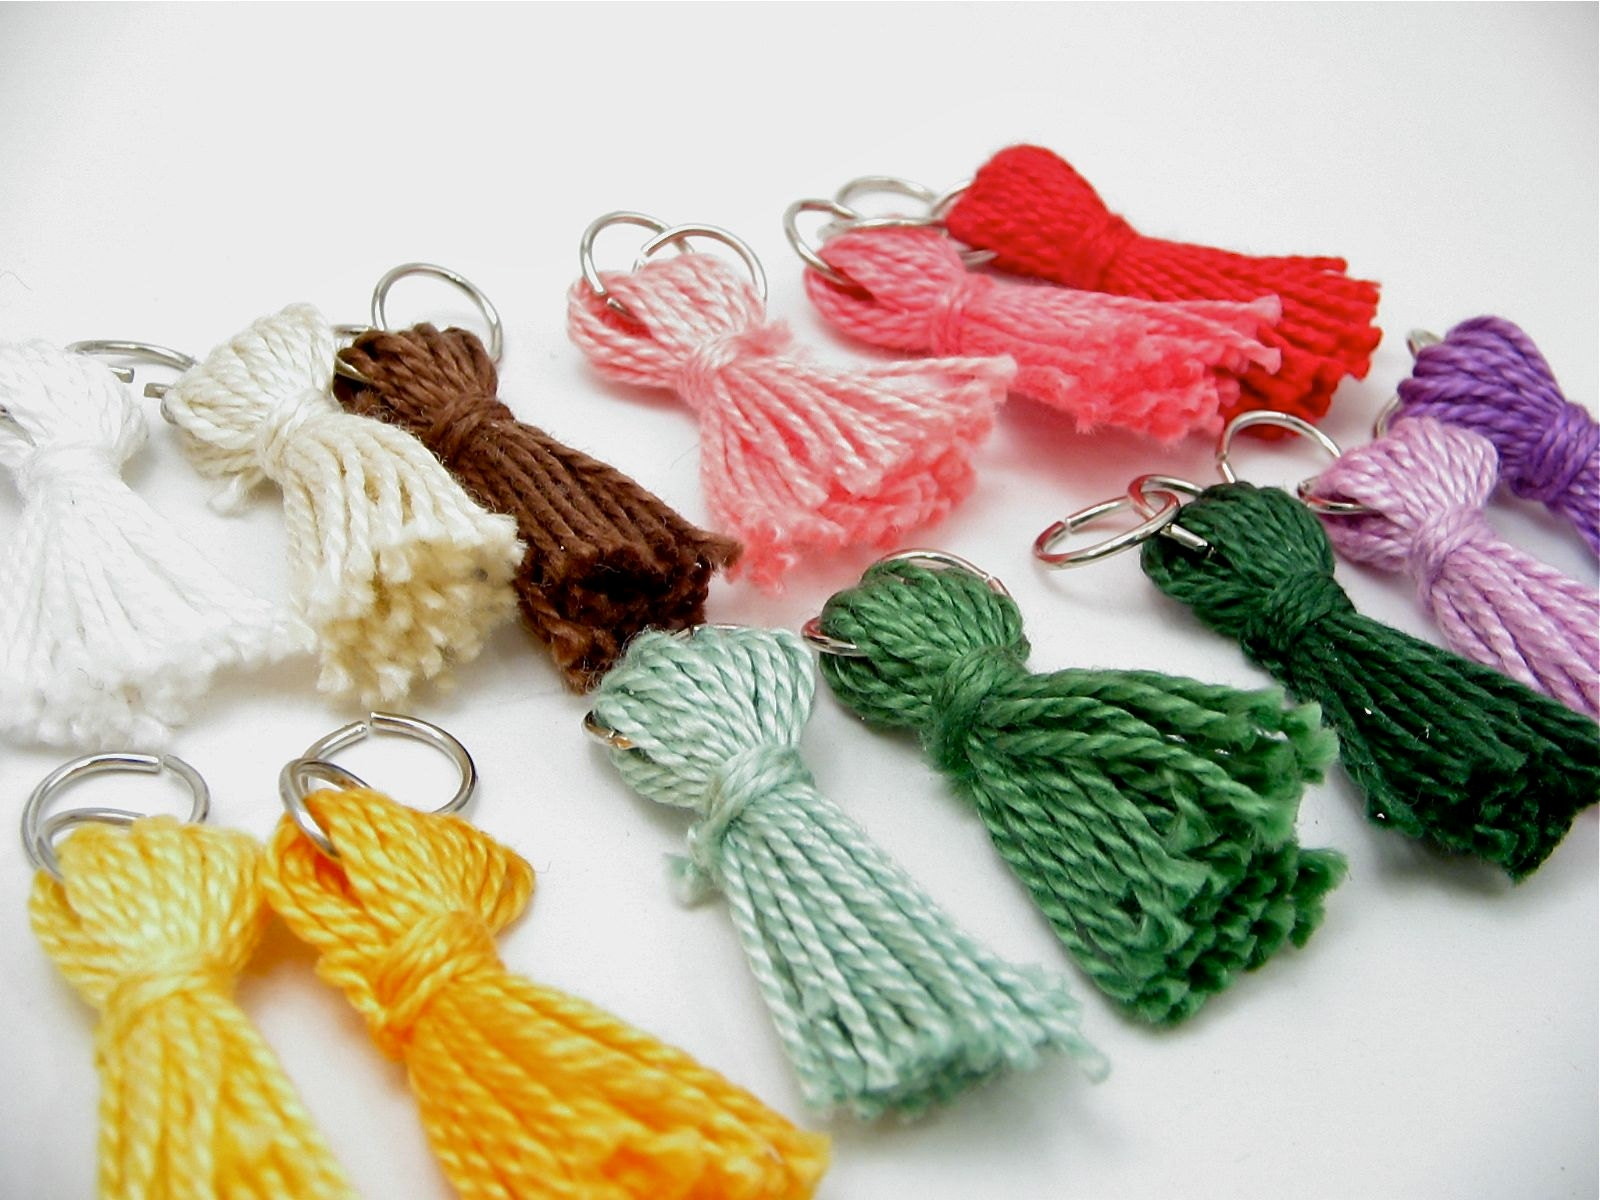 Zipper pulls in many colors